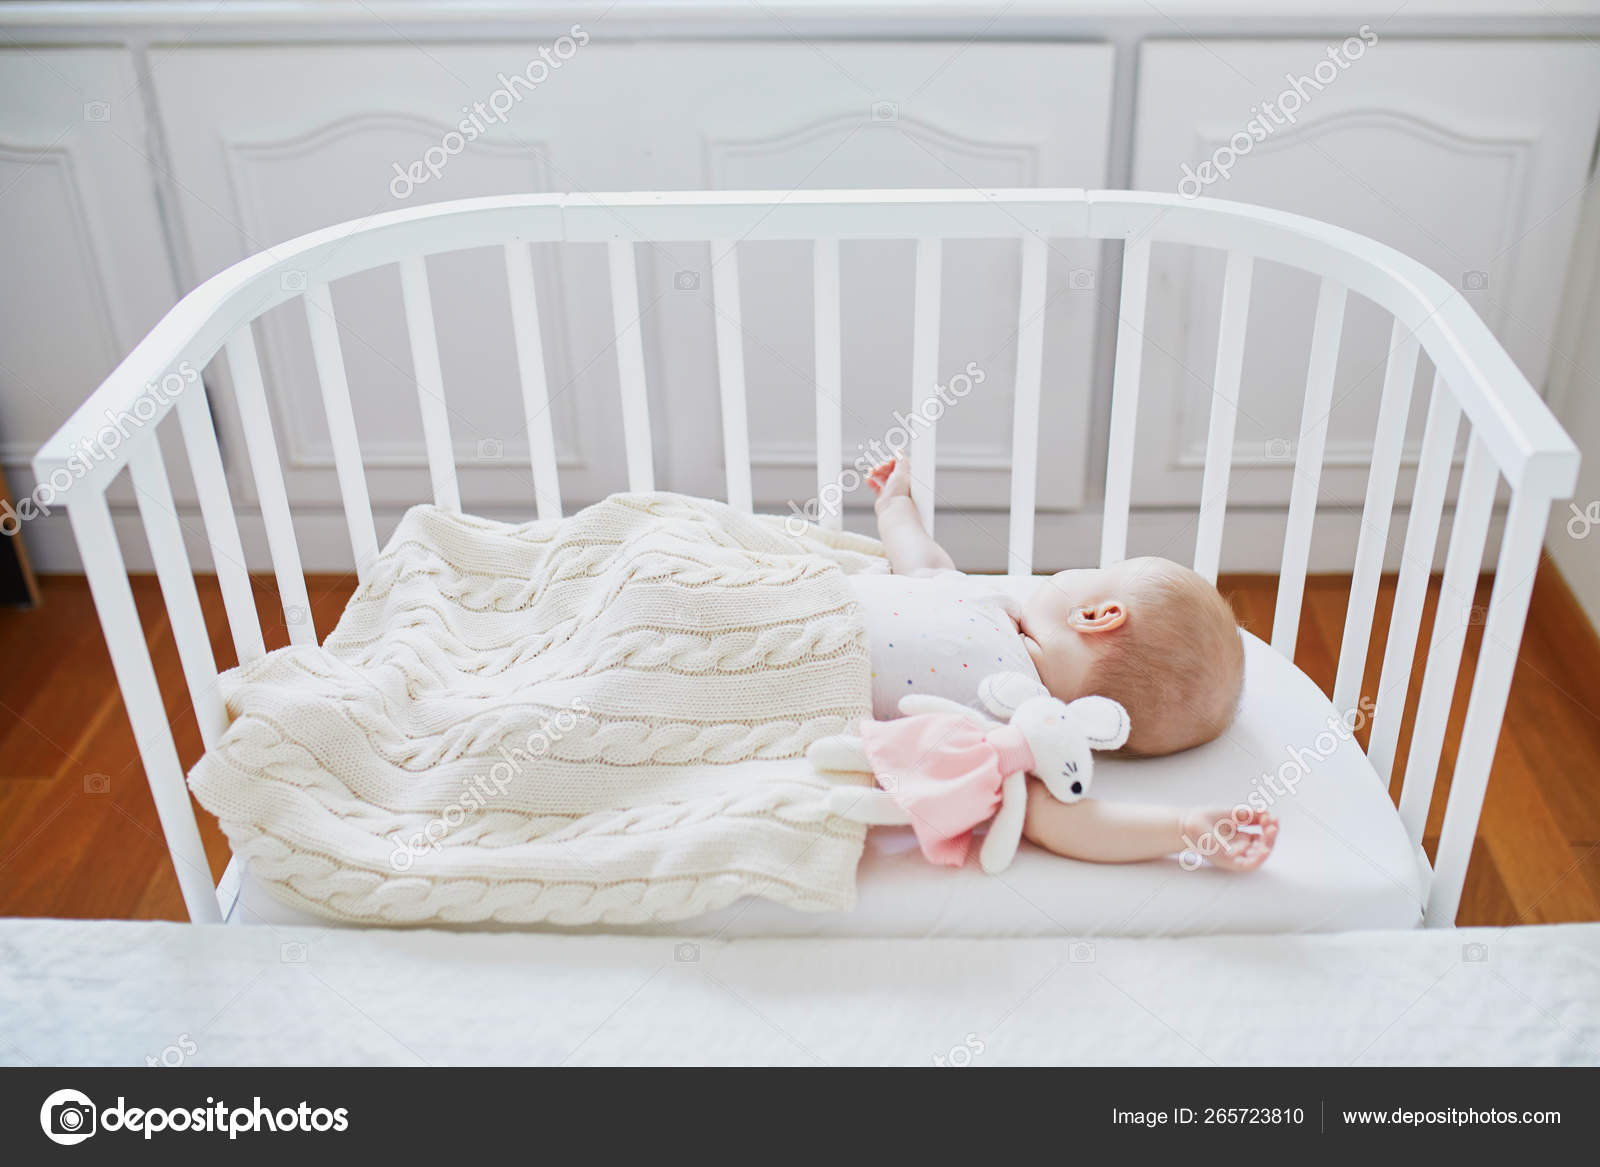 Baby Sleeping In Co Sleeper Crib Attached To Parents Bed Stock Photo C Encrier 265723810